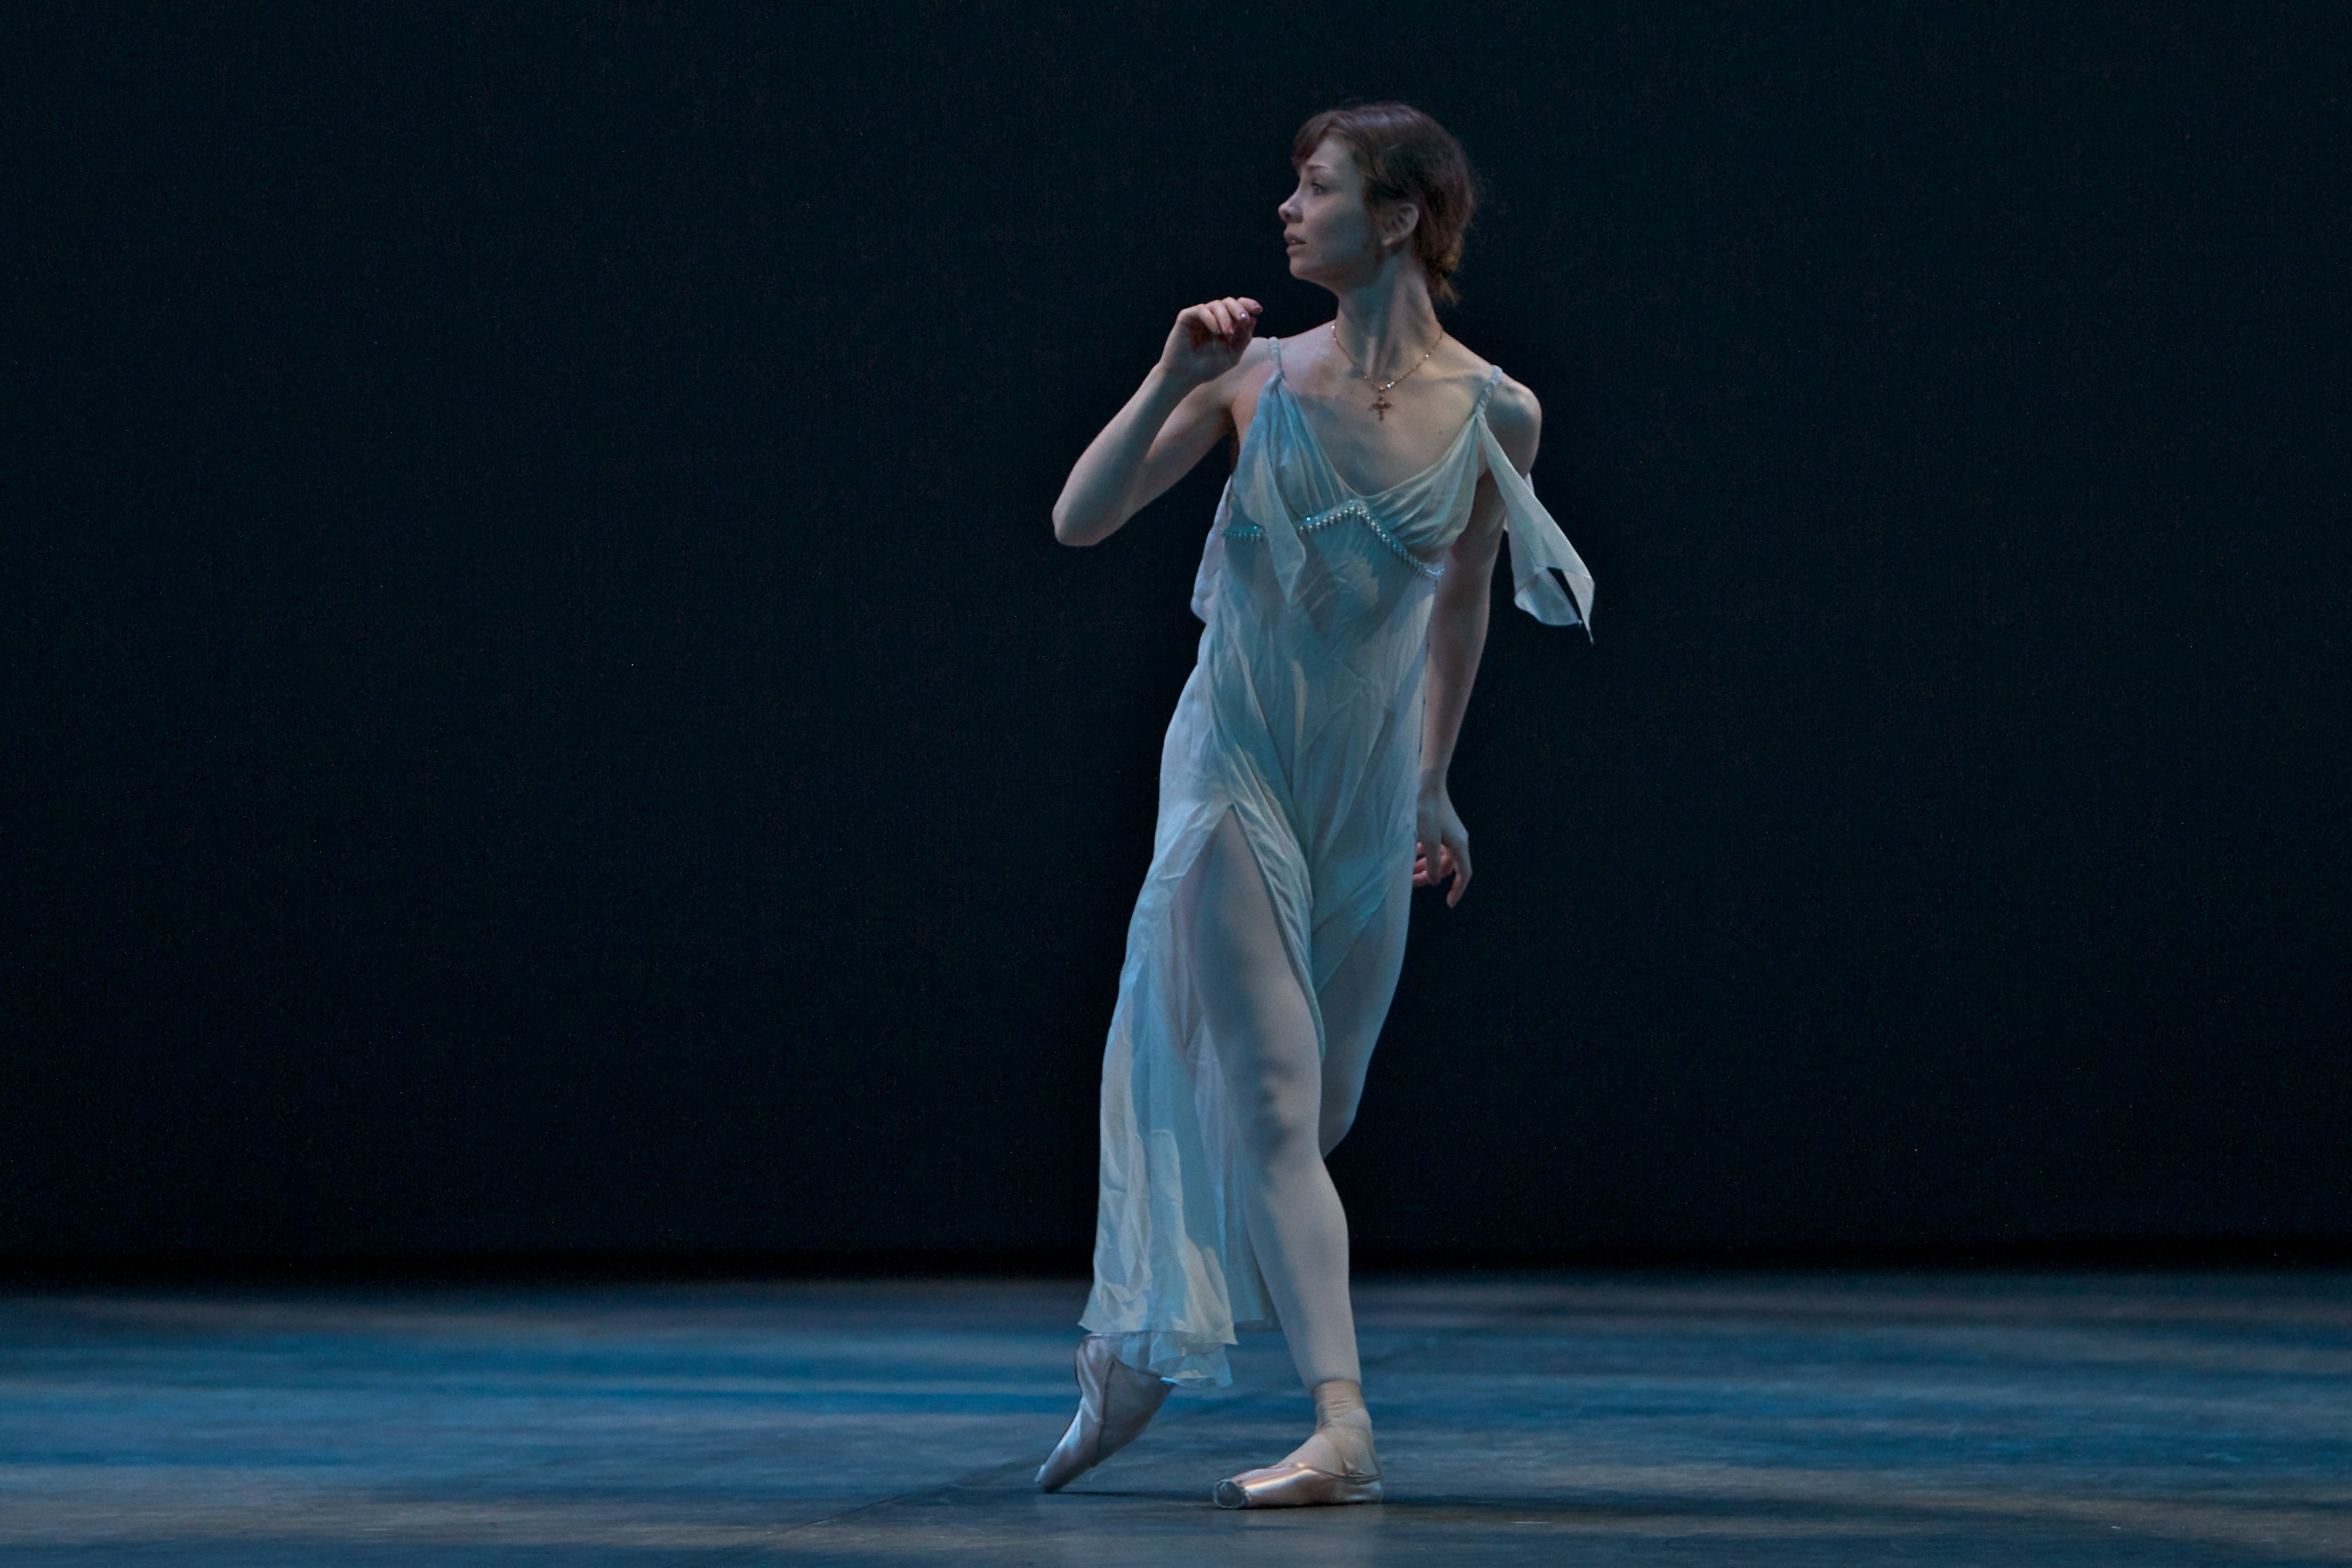 ballet dancers runs across the stage in long white dress